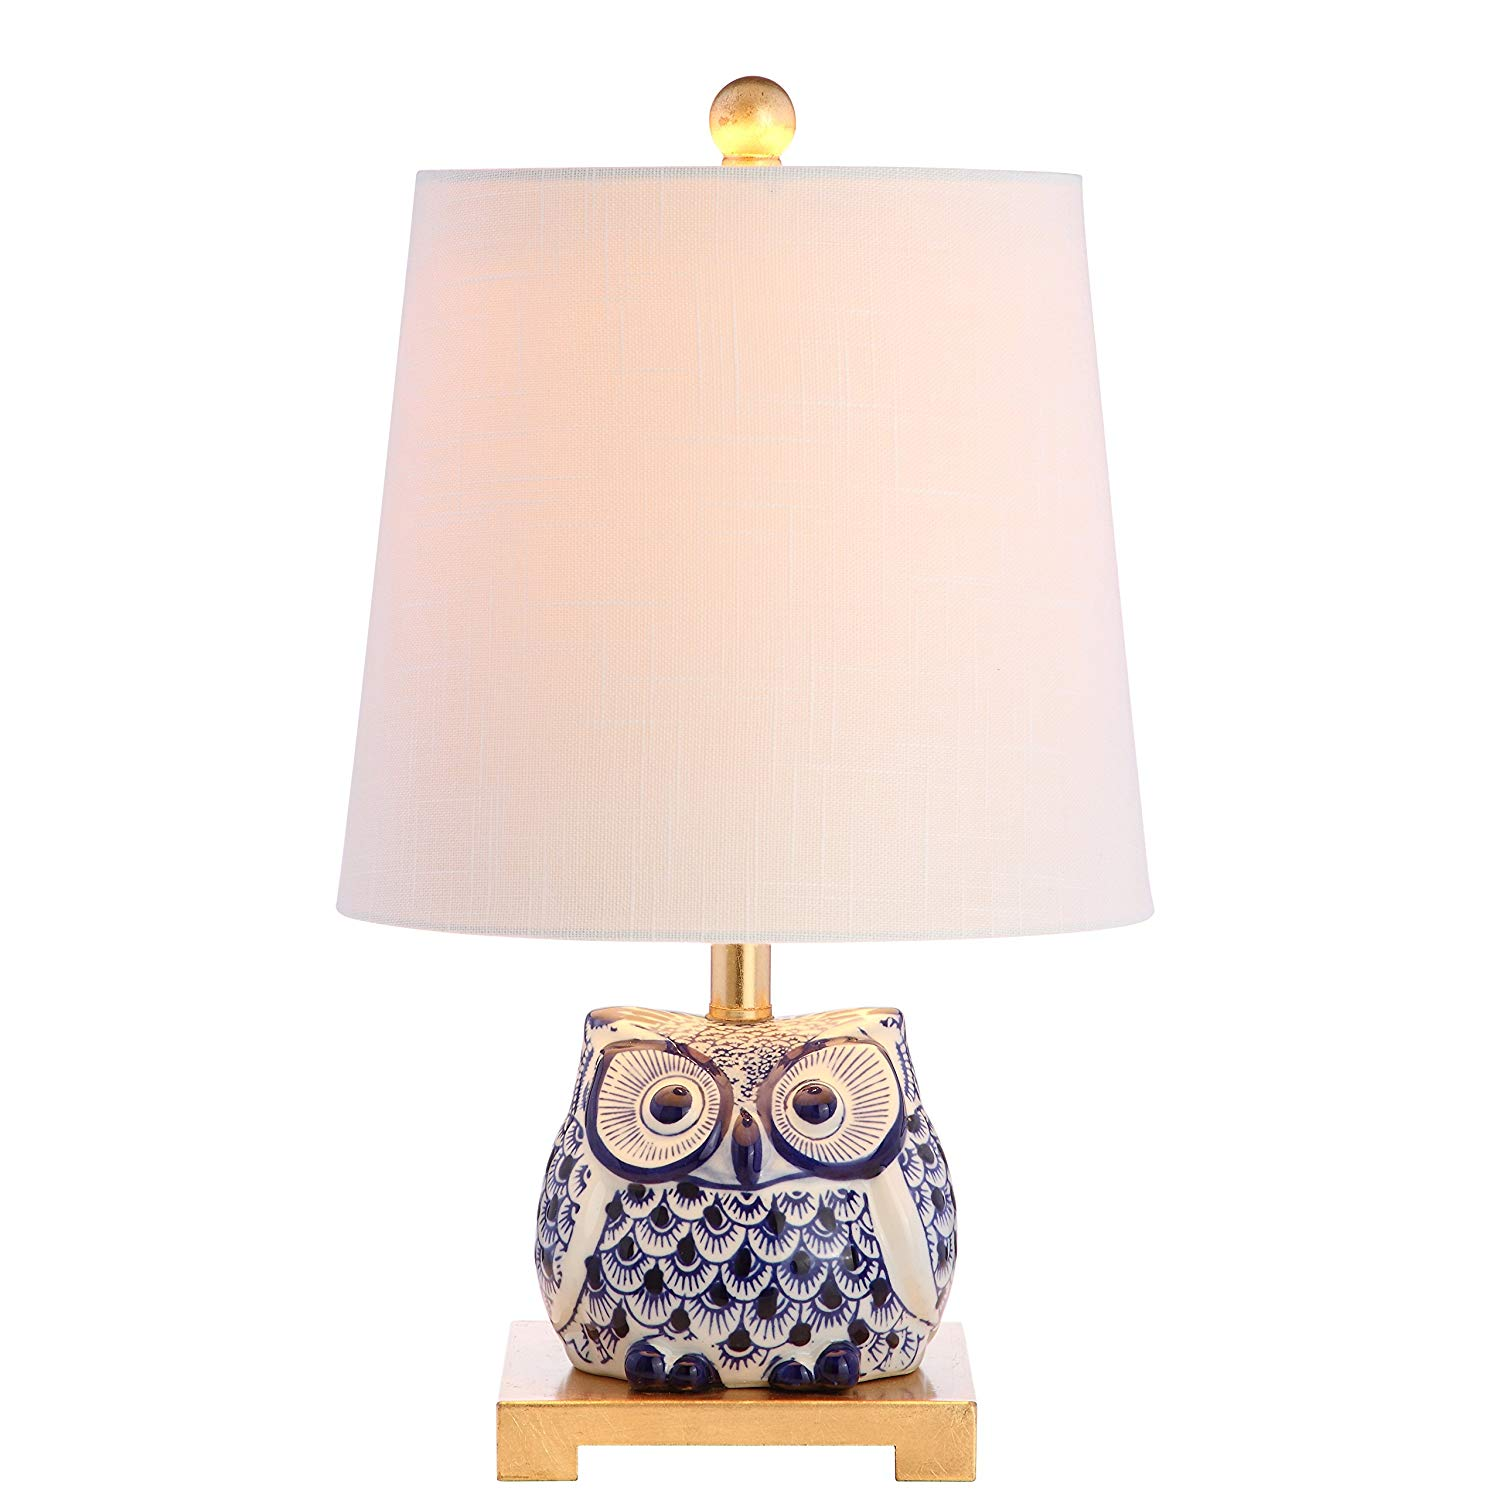 jonathan collection justina ceramic mini table lamp accent lamps blue white small entryway round garden ikea bunnings outdoor storage shelf foyer cabinet wine cupboard floating